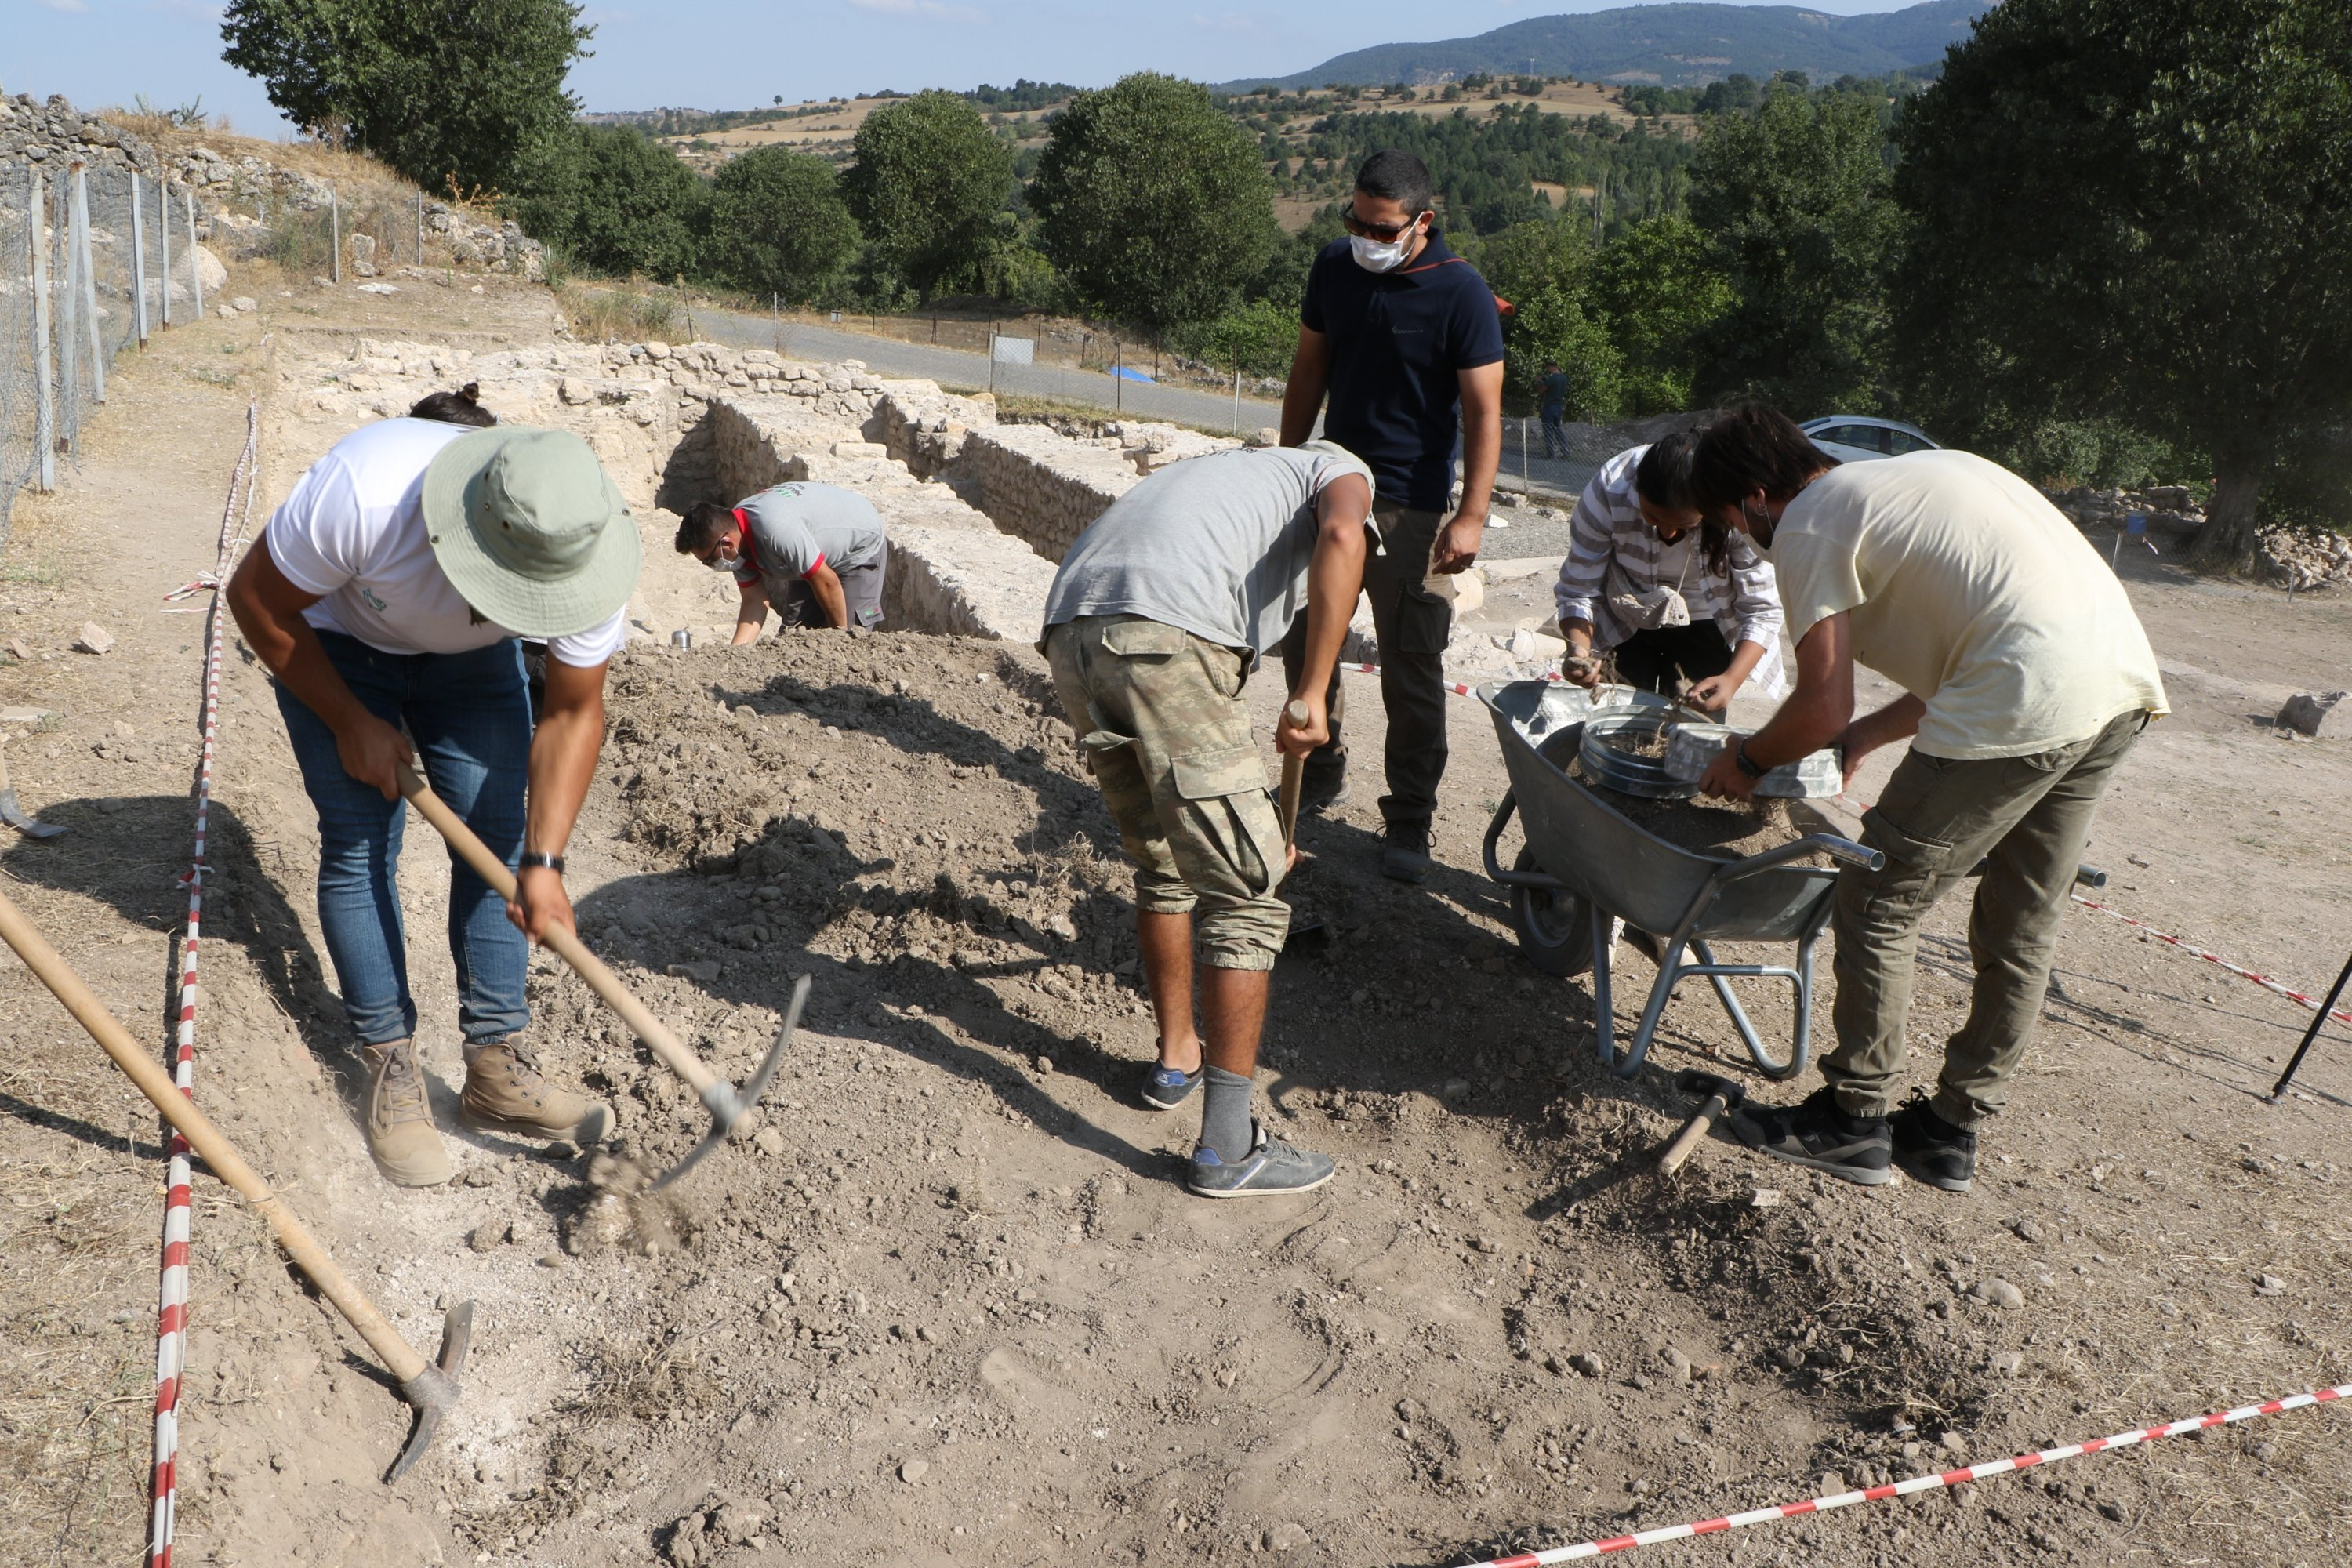 Archaeologists work in the ancient city of Hadrianopolis, Karabük, northern Turkey, Sept. 20, 2020. (İHA PHOTO)